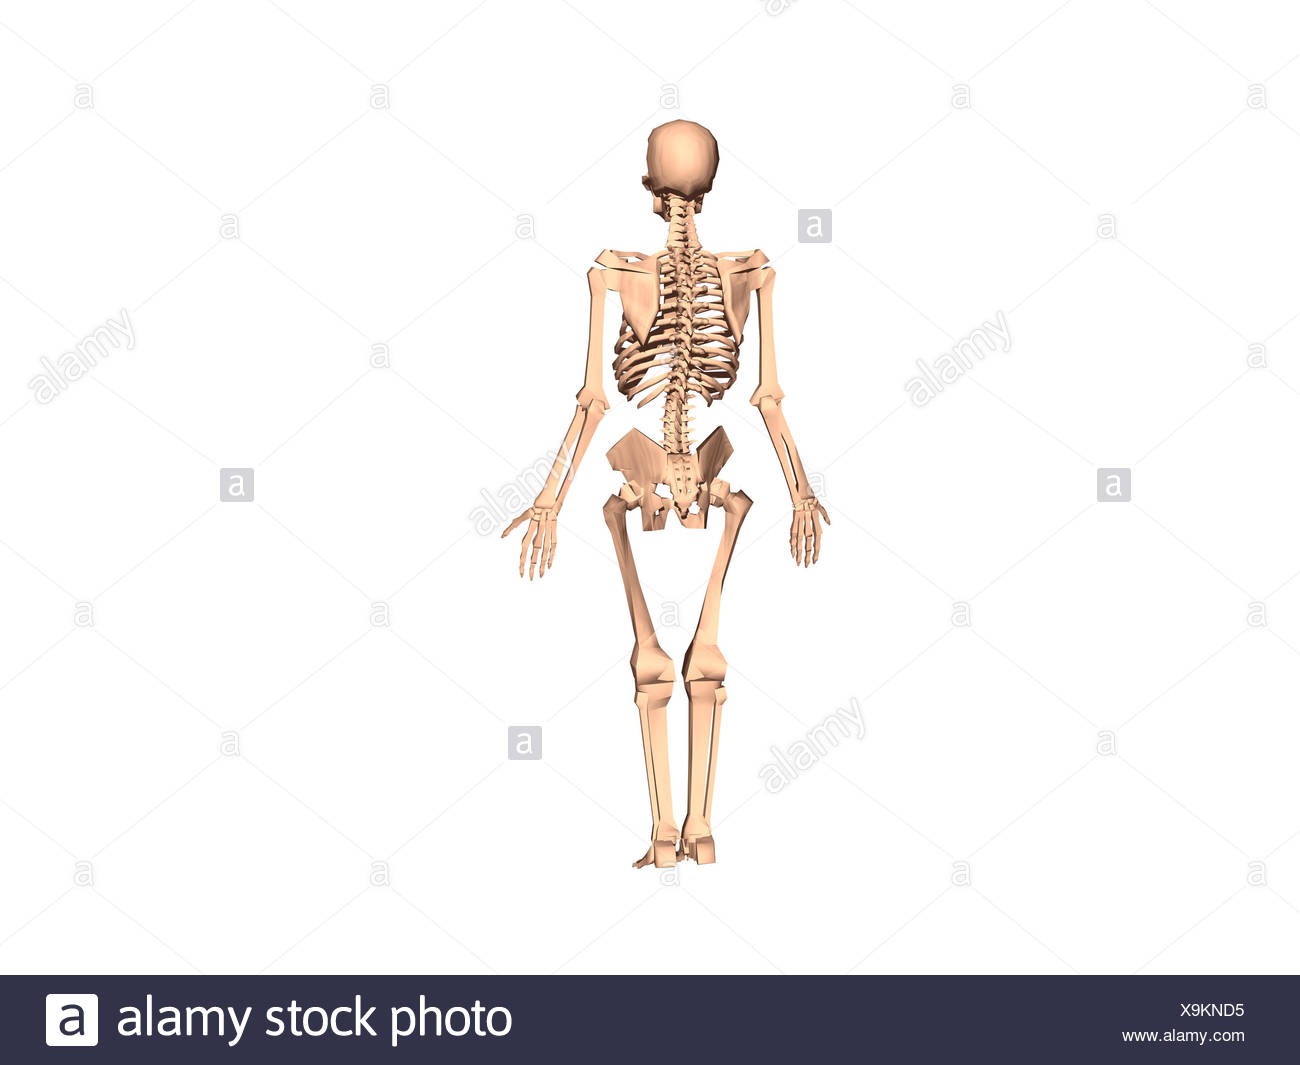 Skeleton Ribs Stockfotos & Skeleton Ribs Bilder - Alamy